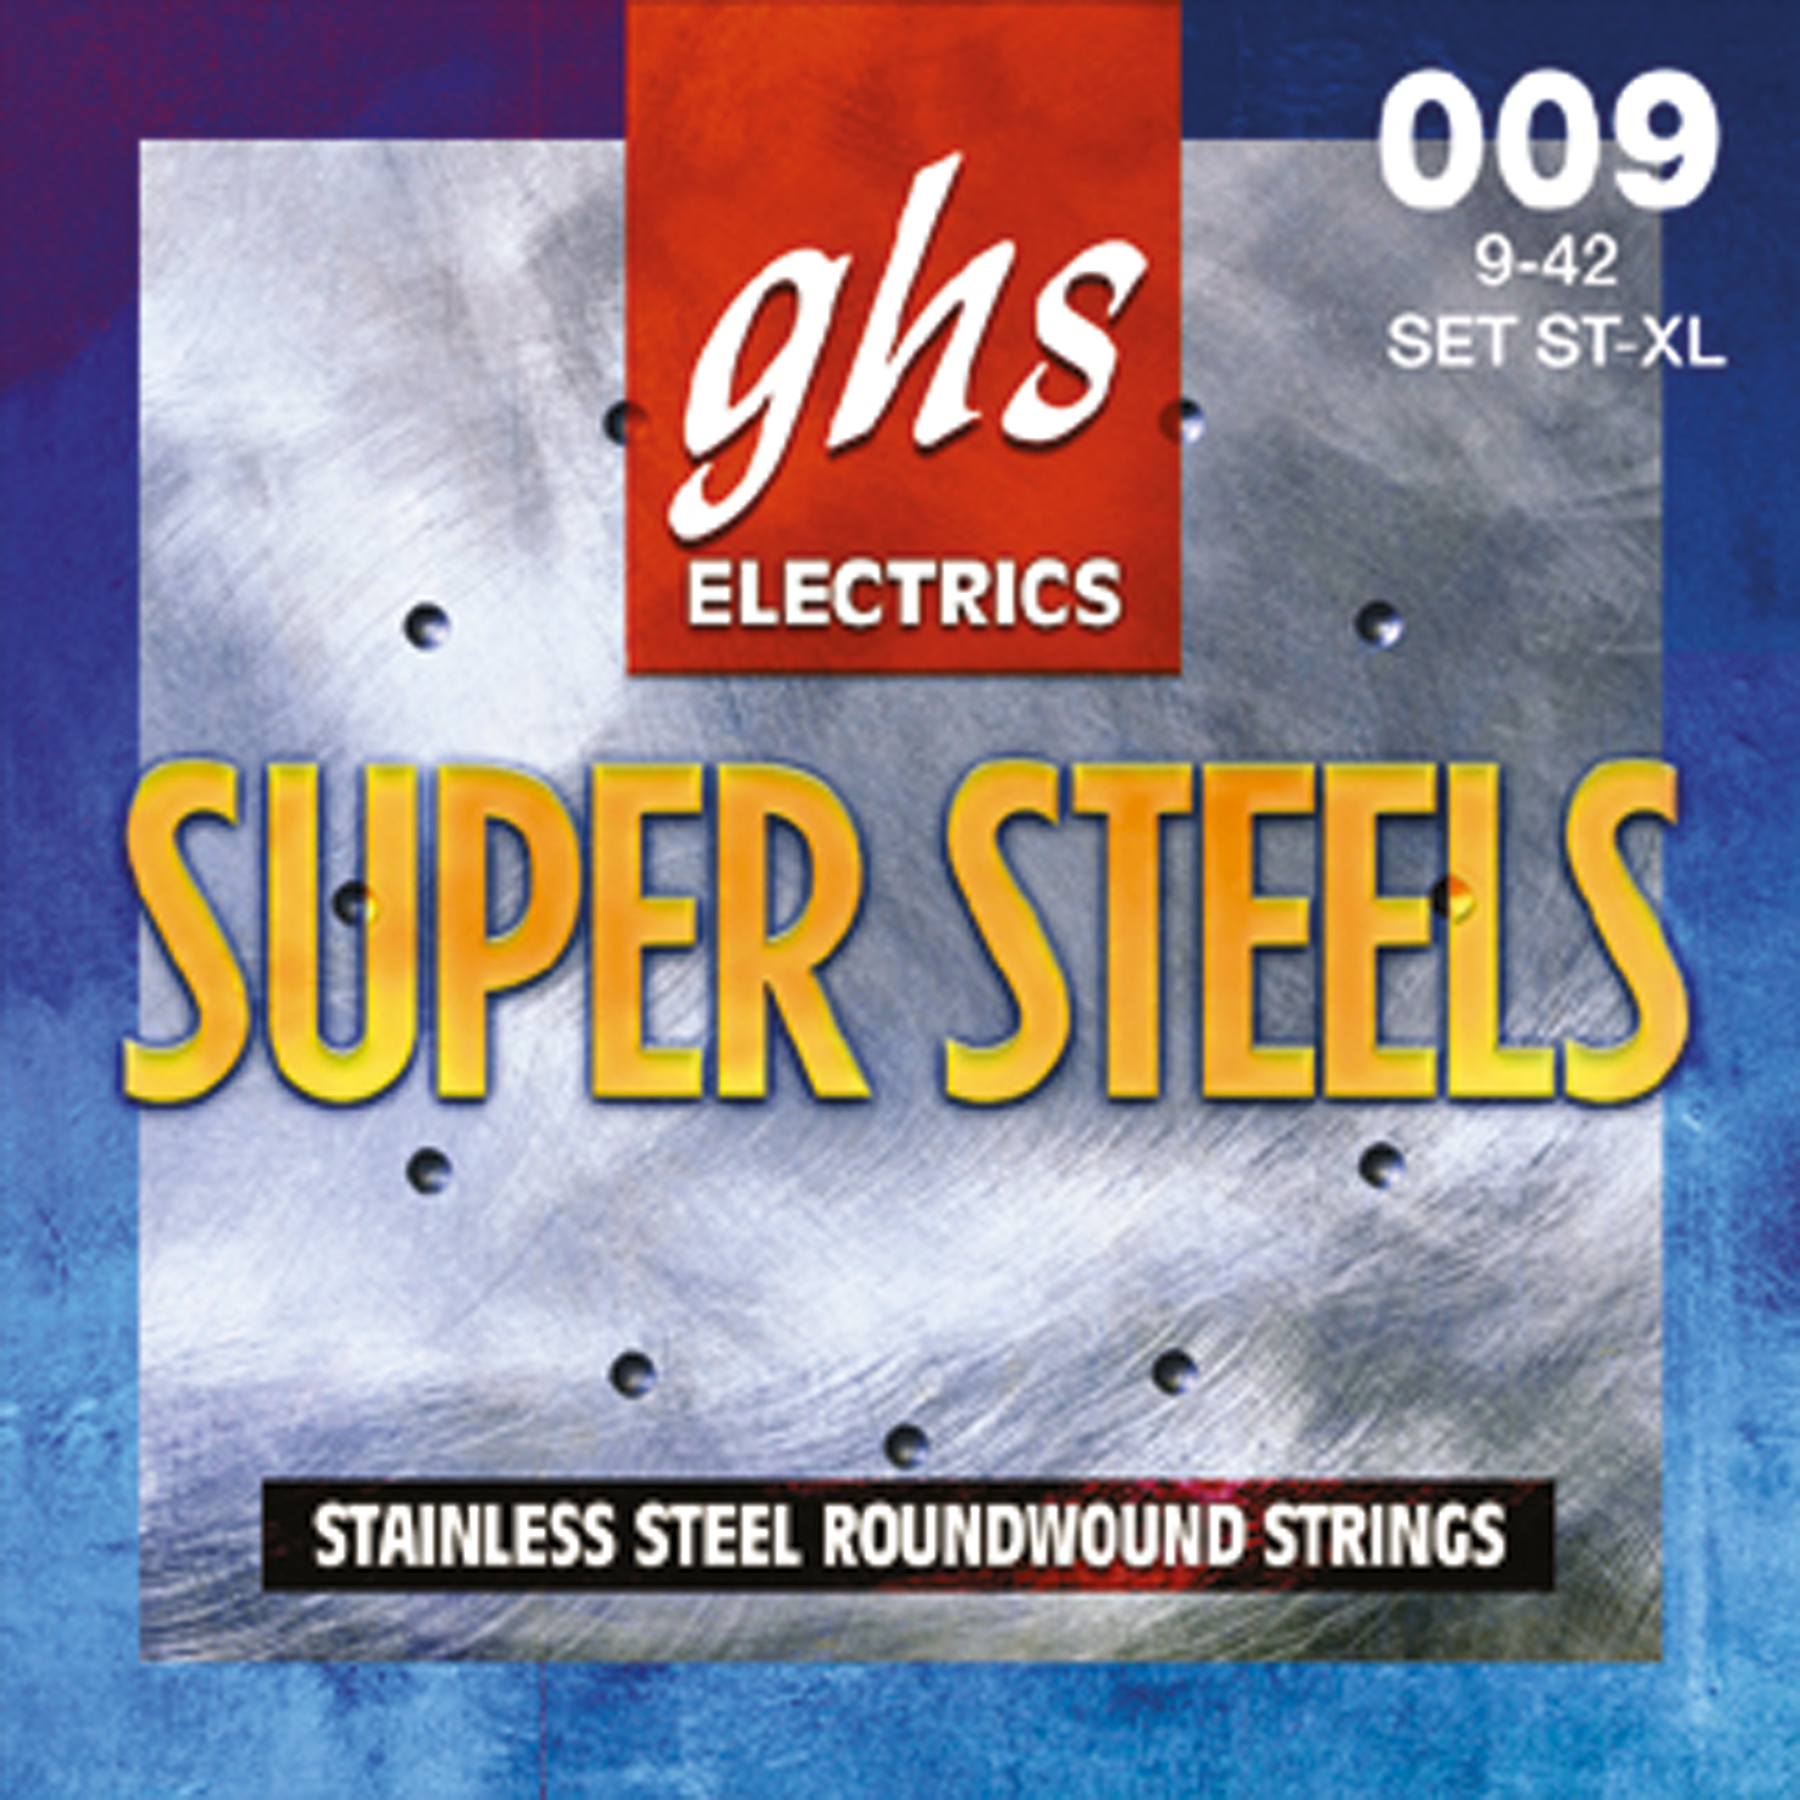 ST32 Rivestita Super Steel